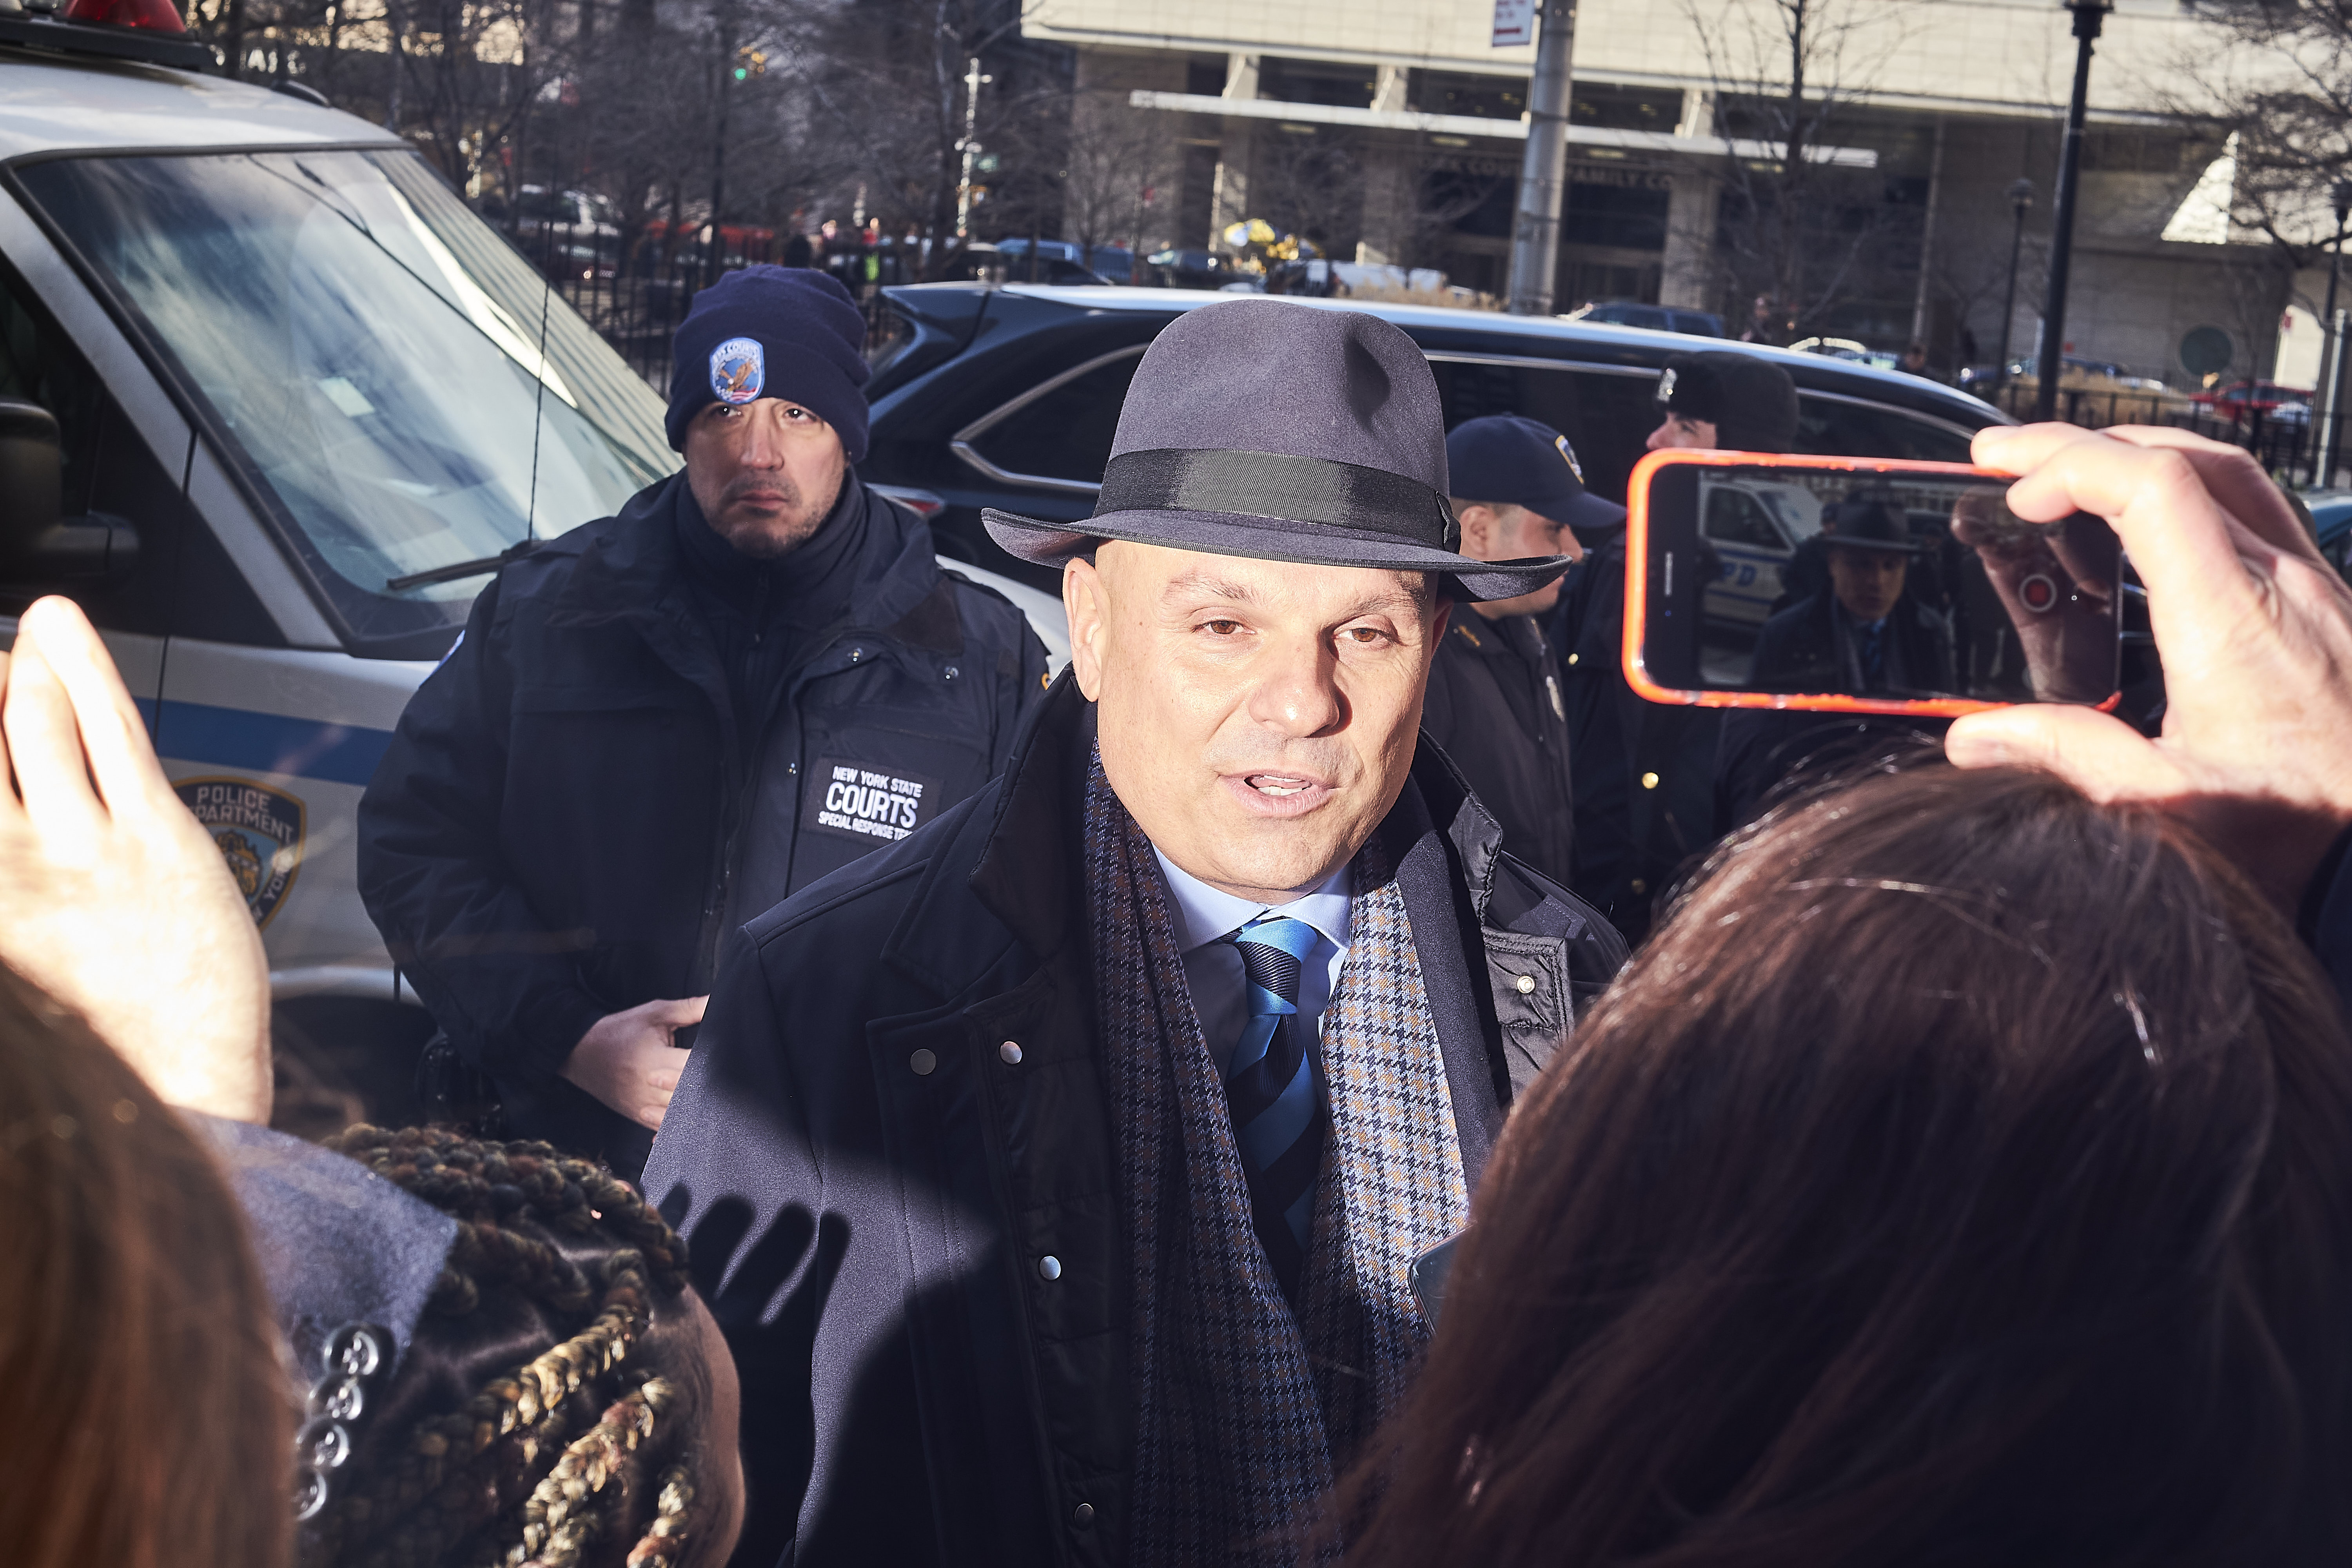 Defense lawyer Arthur L. Aidala, who represents Weinstein, speaks to journalists outside New York City Criminal Court on Jan. 8